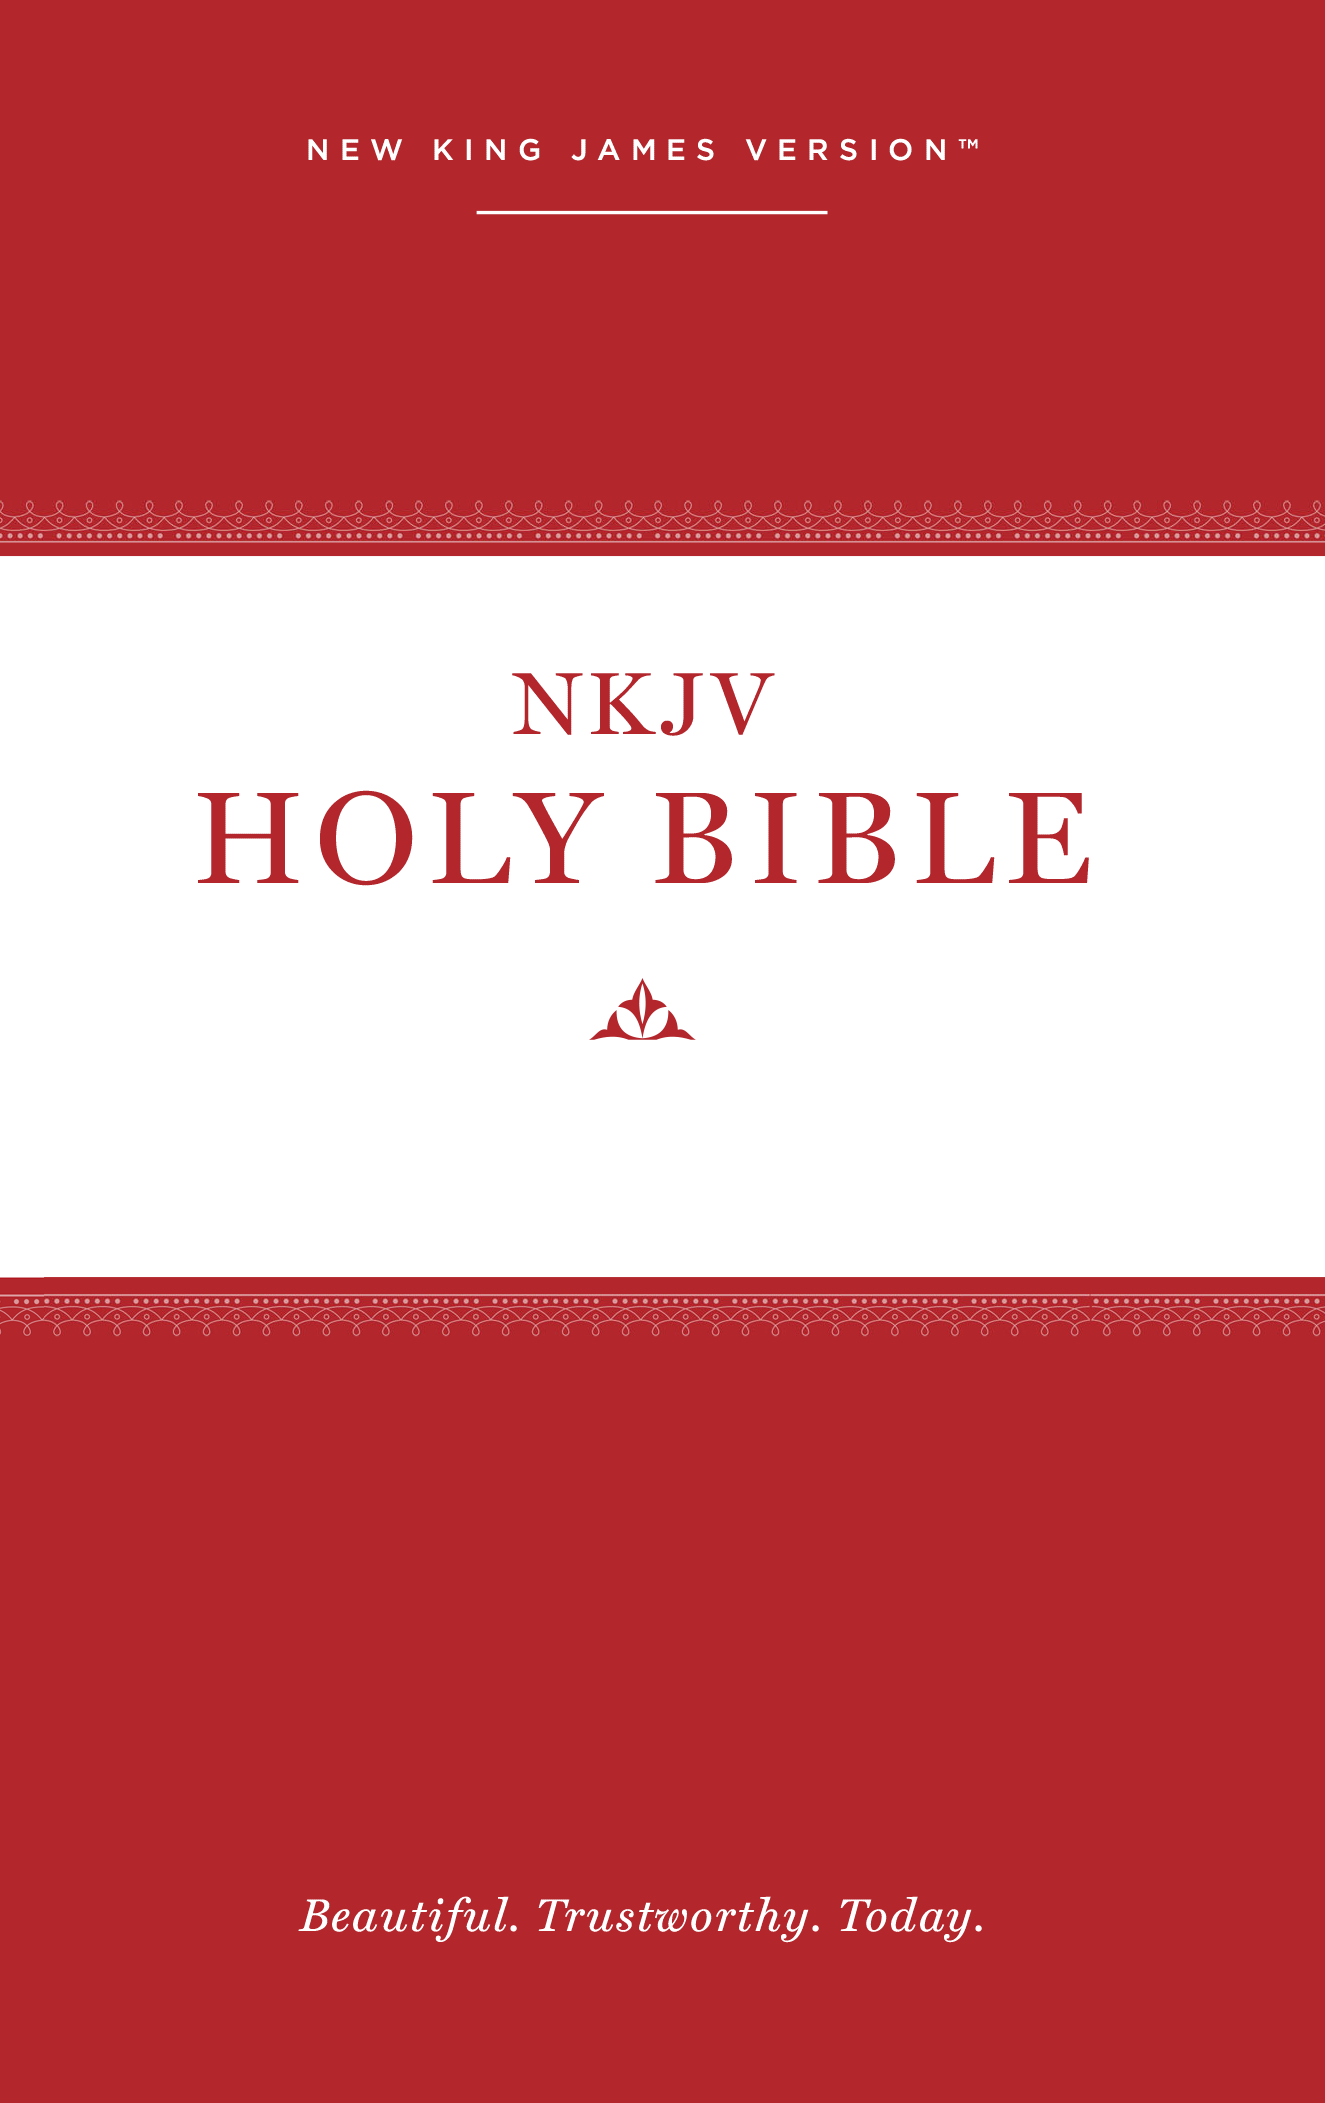 New King James Version - NKJV